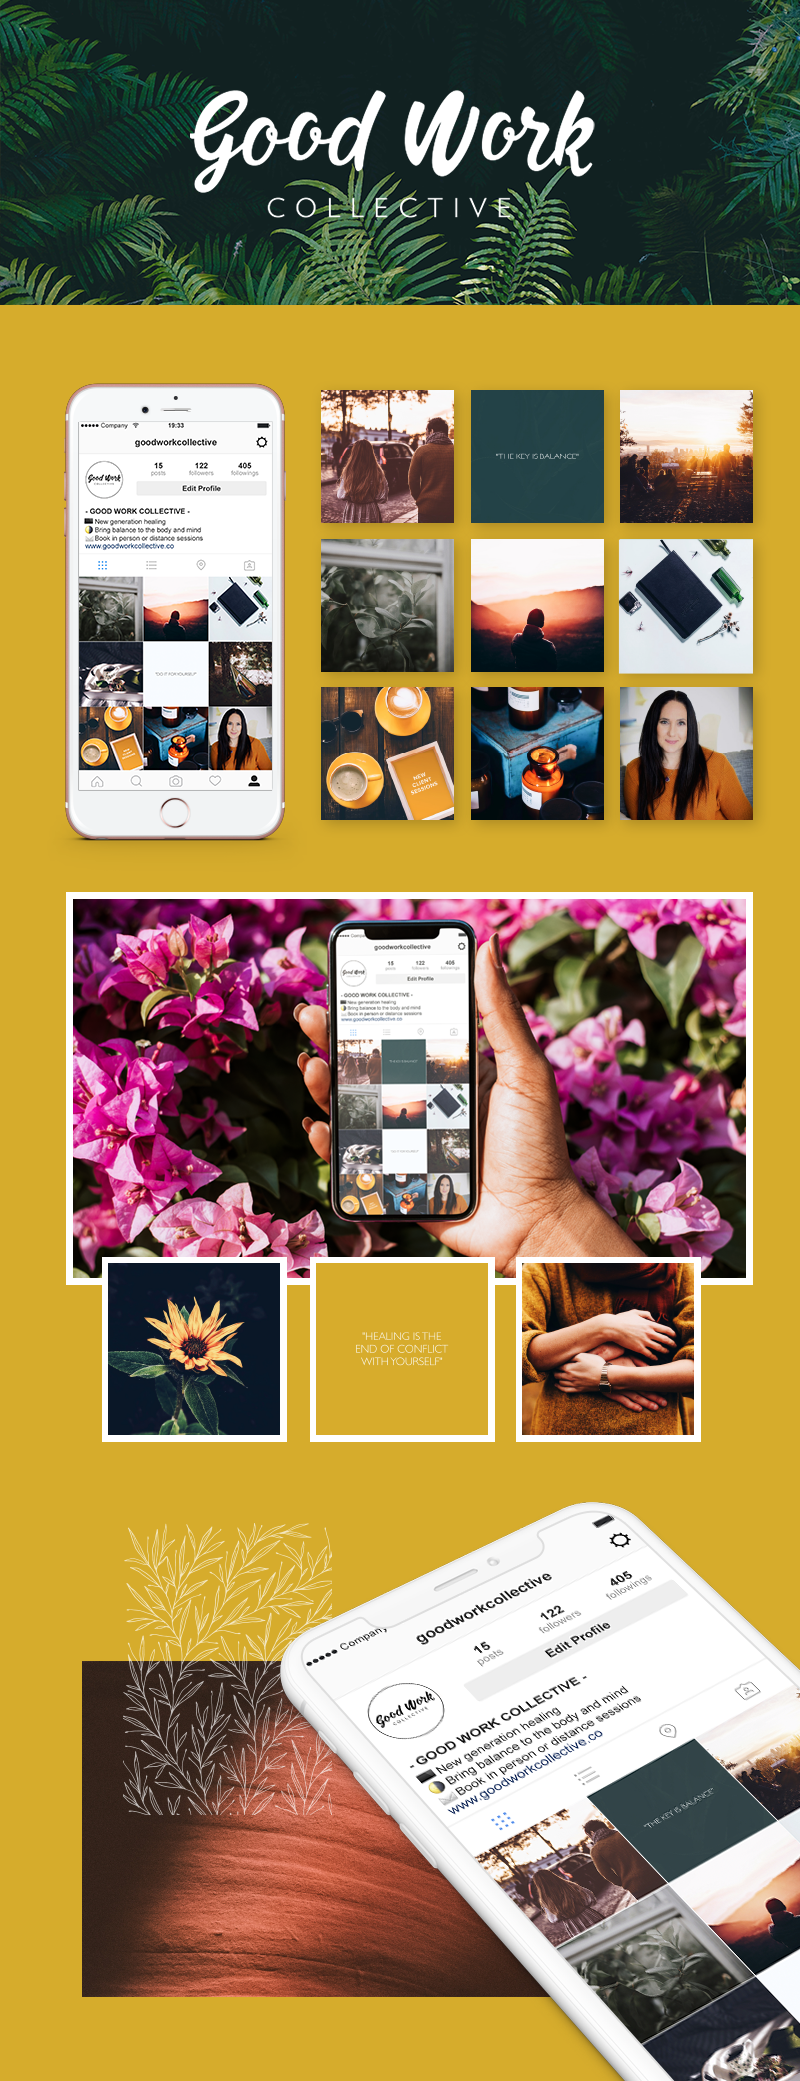 goodworkcollective instagram styling simply whyte design branding and squarespace design auckland new zealand.png